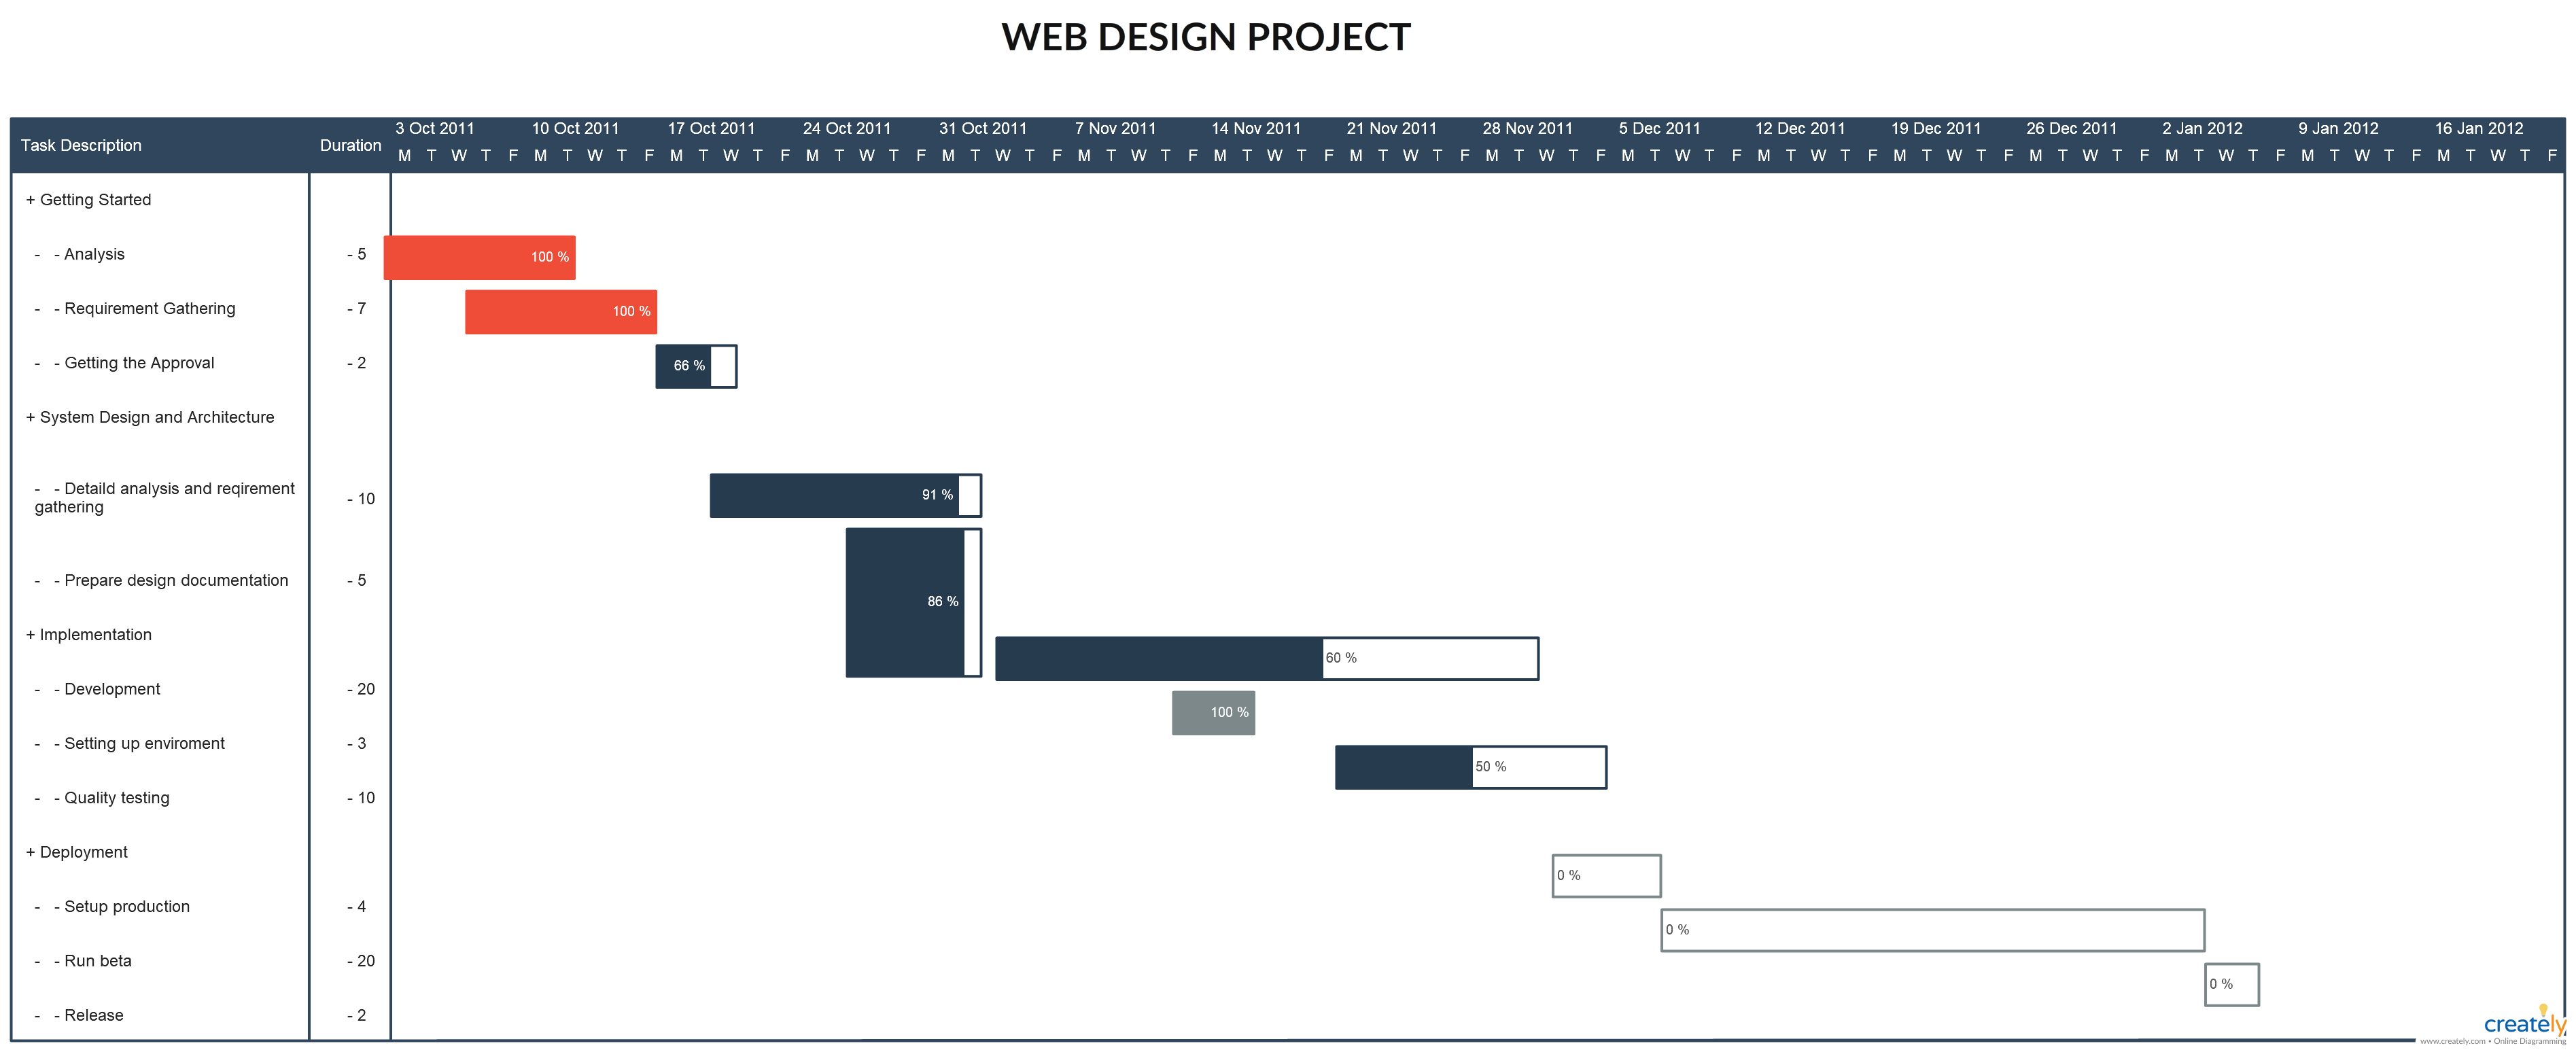 Gantt chart web design project this is template of website development you can edit and create your own diagram also rh pinterest